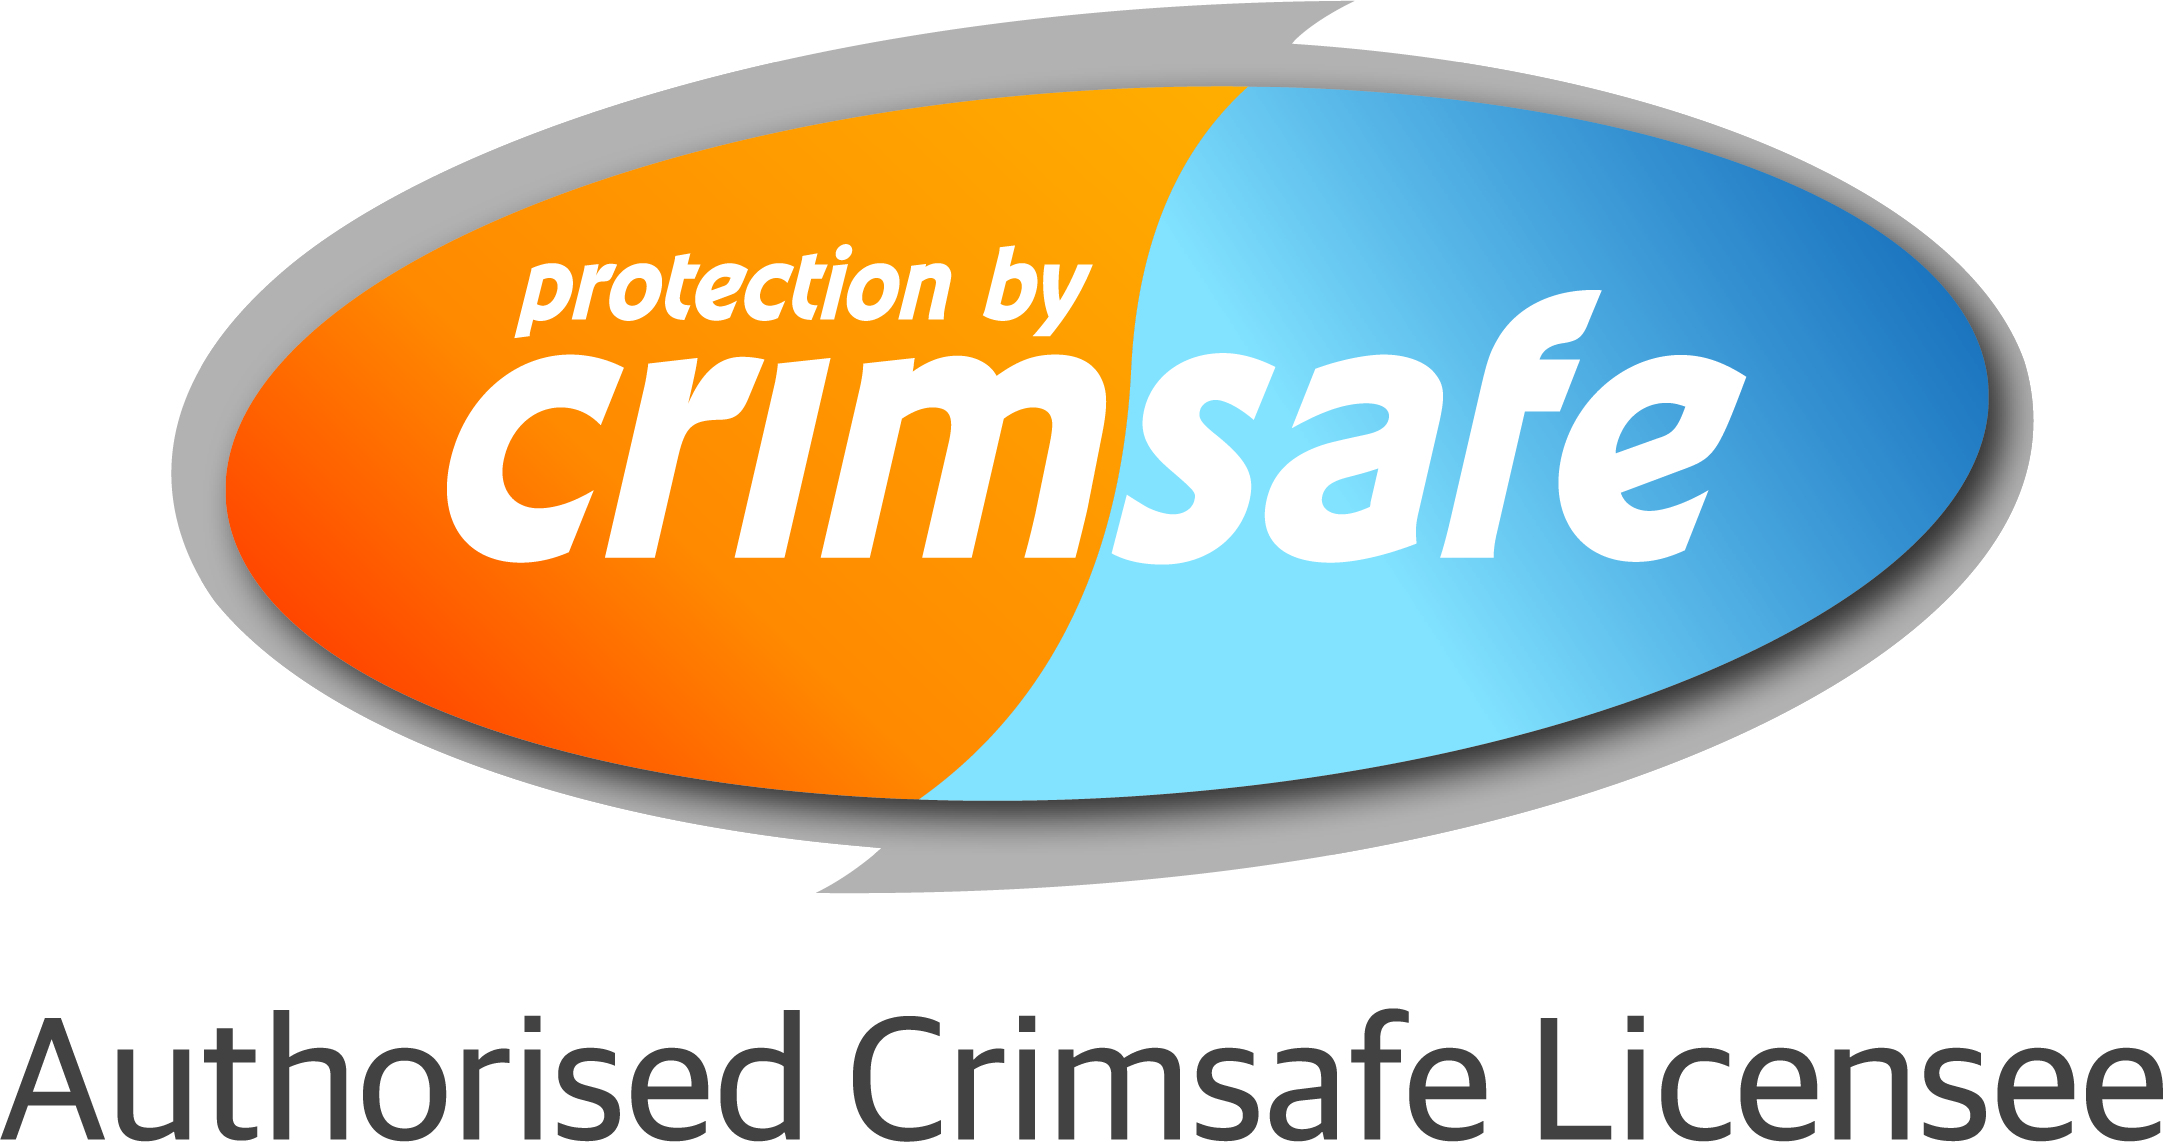 Authorised Crimsafe Licensee CMYK.jpg